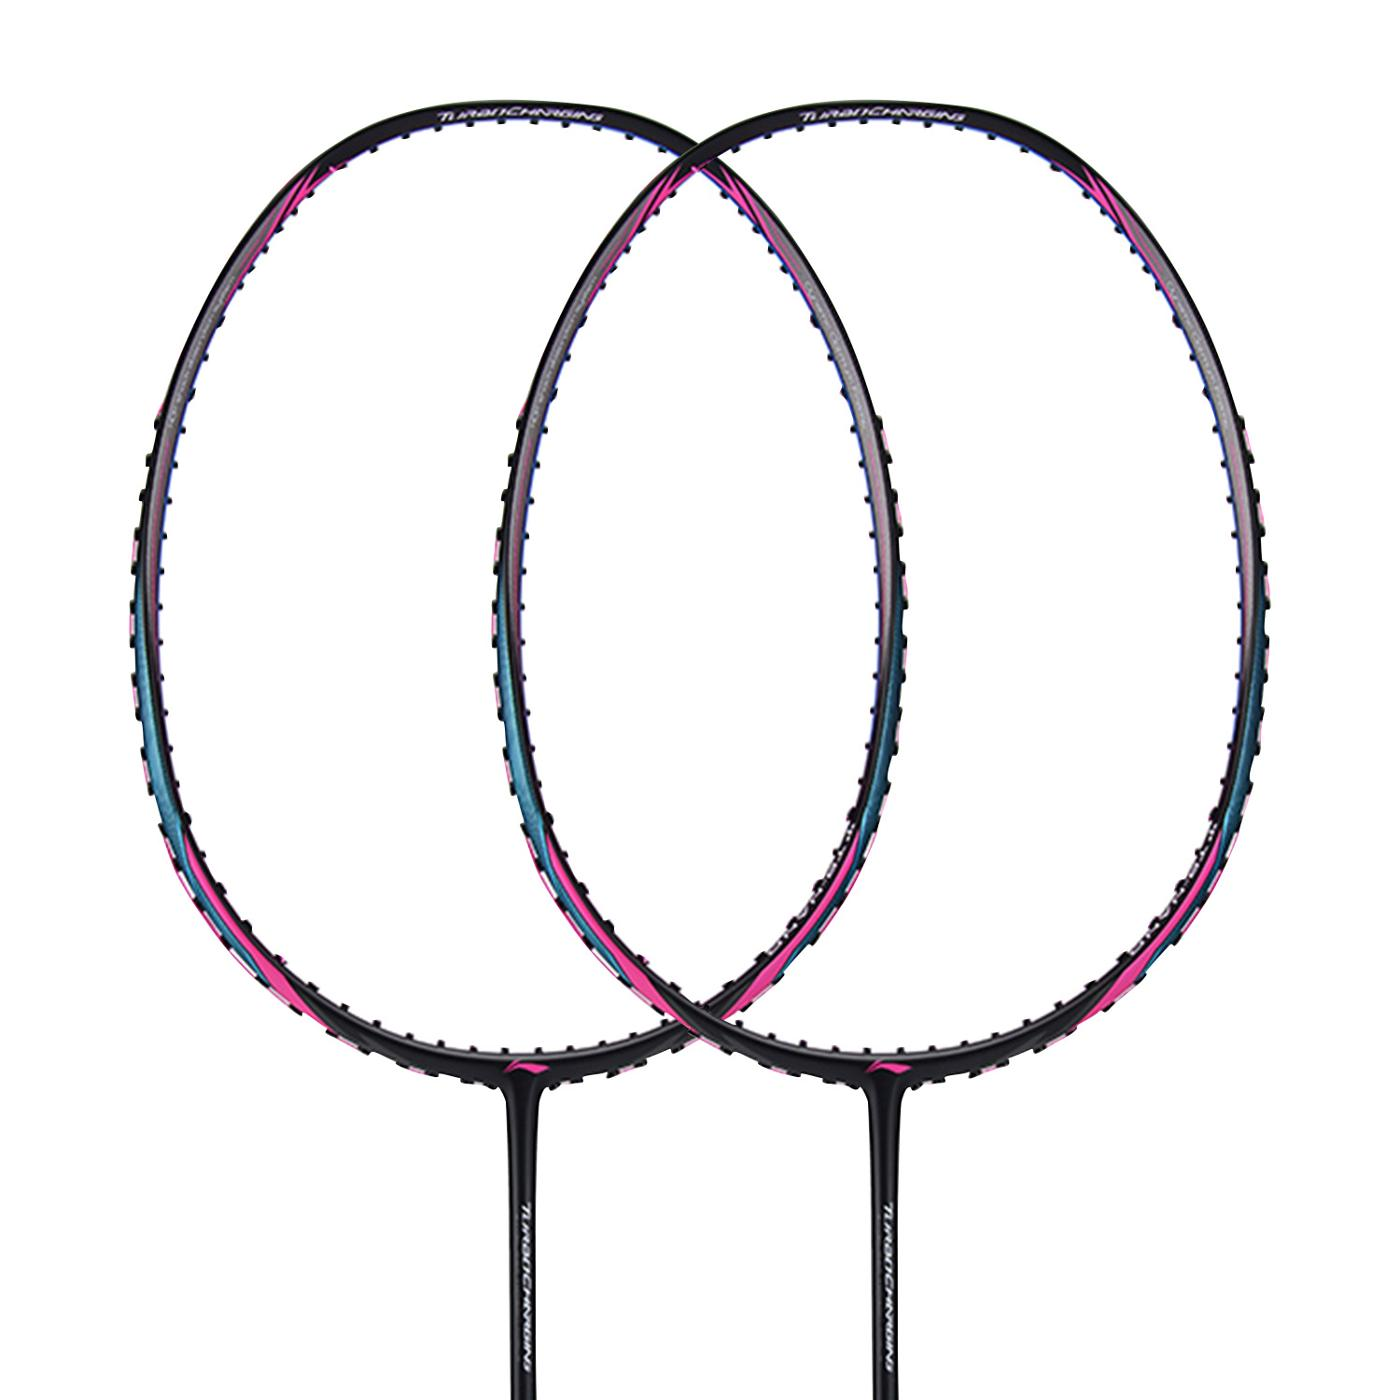 Li Ning Turbo Charging 75 Badminton Racket Black & Blue